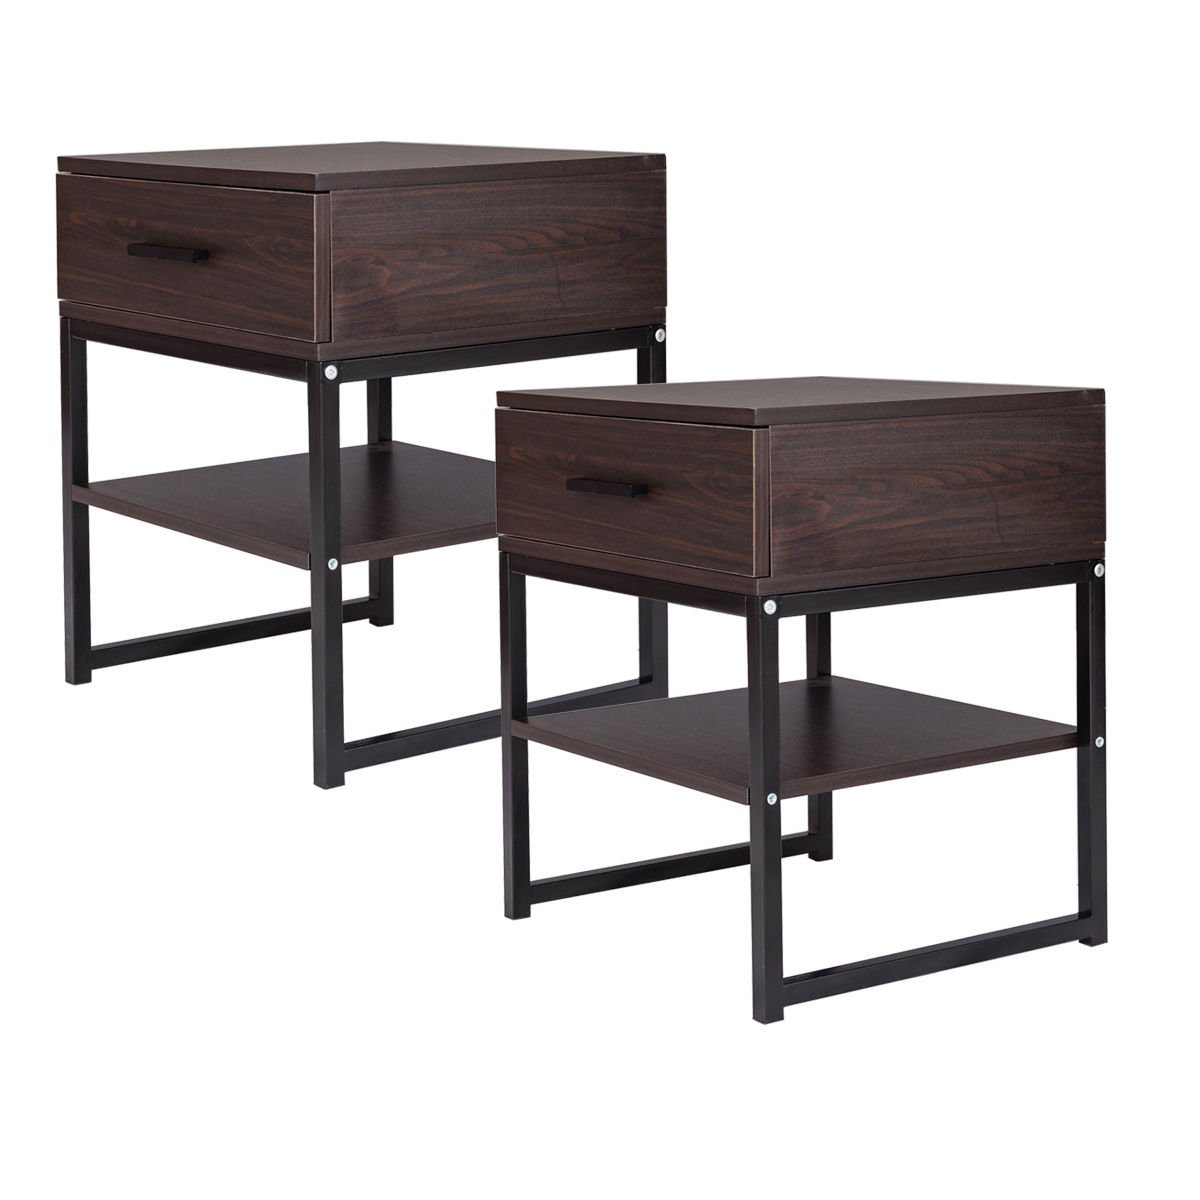 End Table Night Stand Table Bedroom Furniture Shelf Storage Drawer Display 2PCS